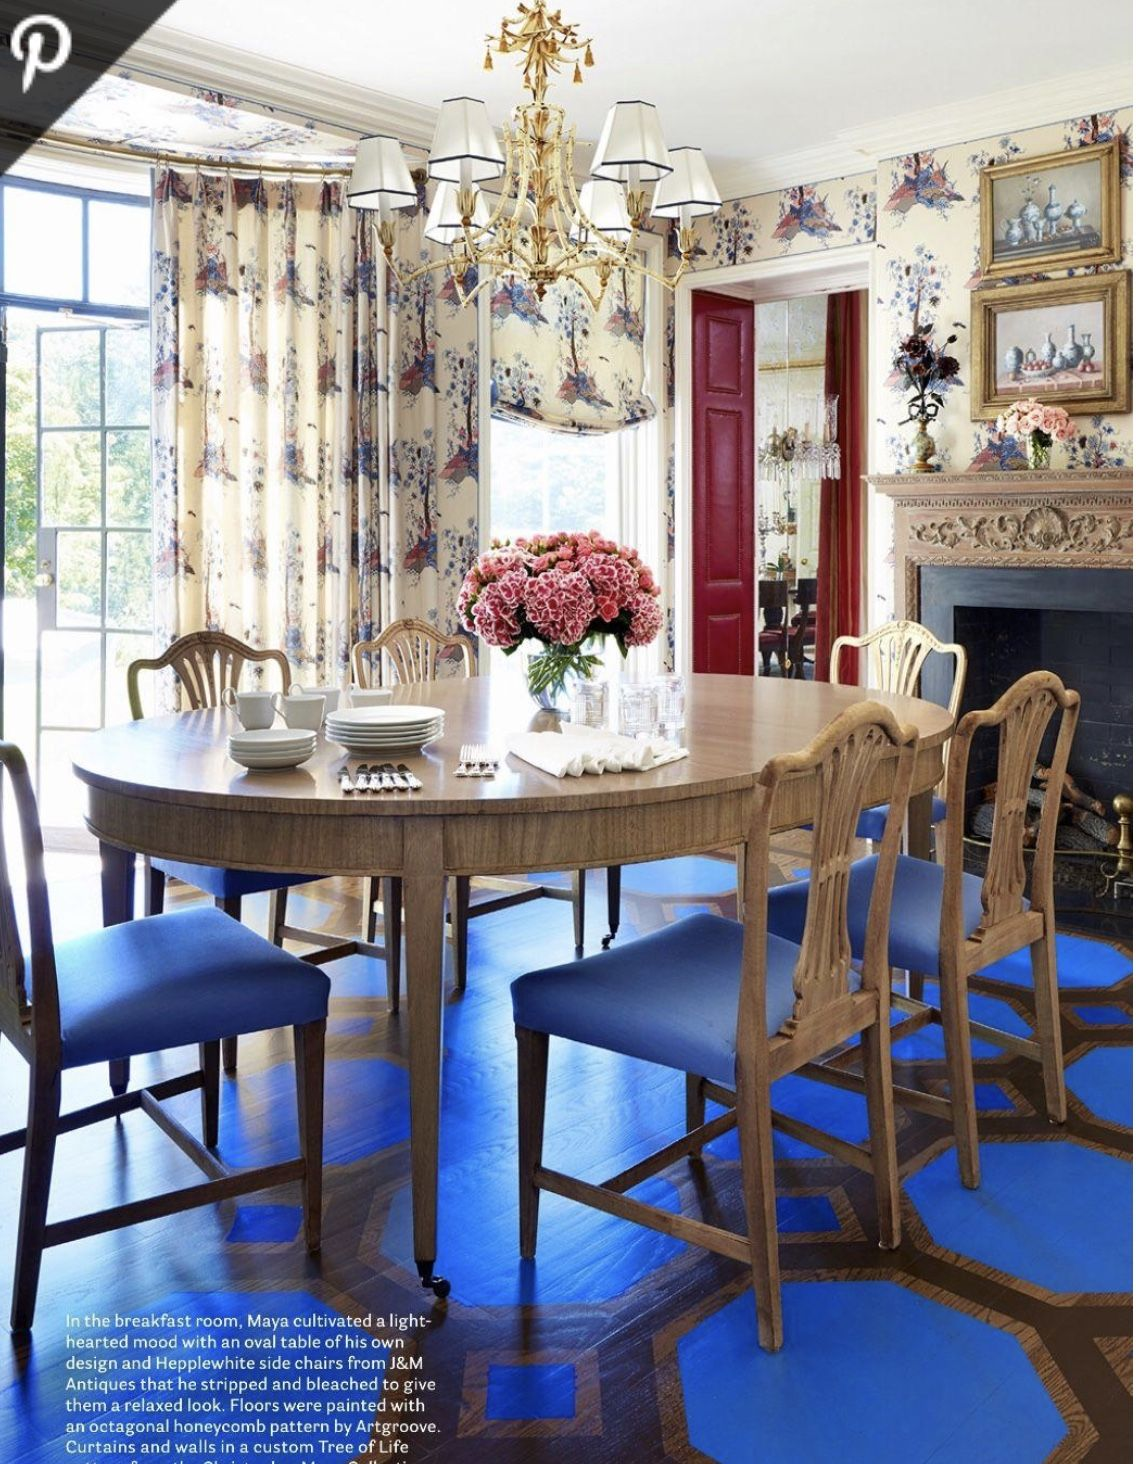 Pin by Judith Williams on A blue &white decor in 2020 ...